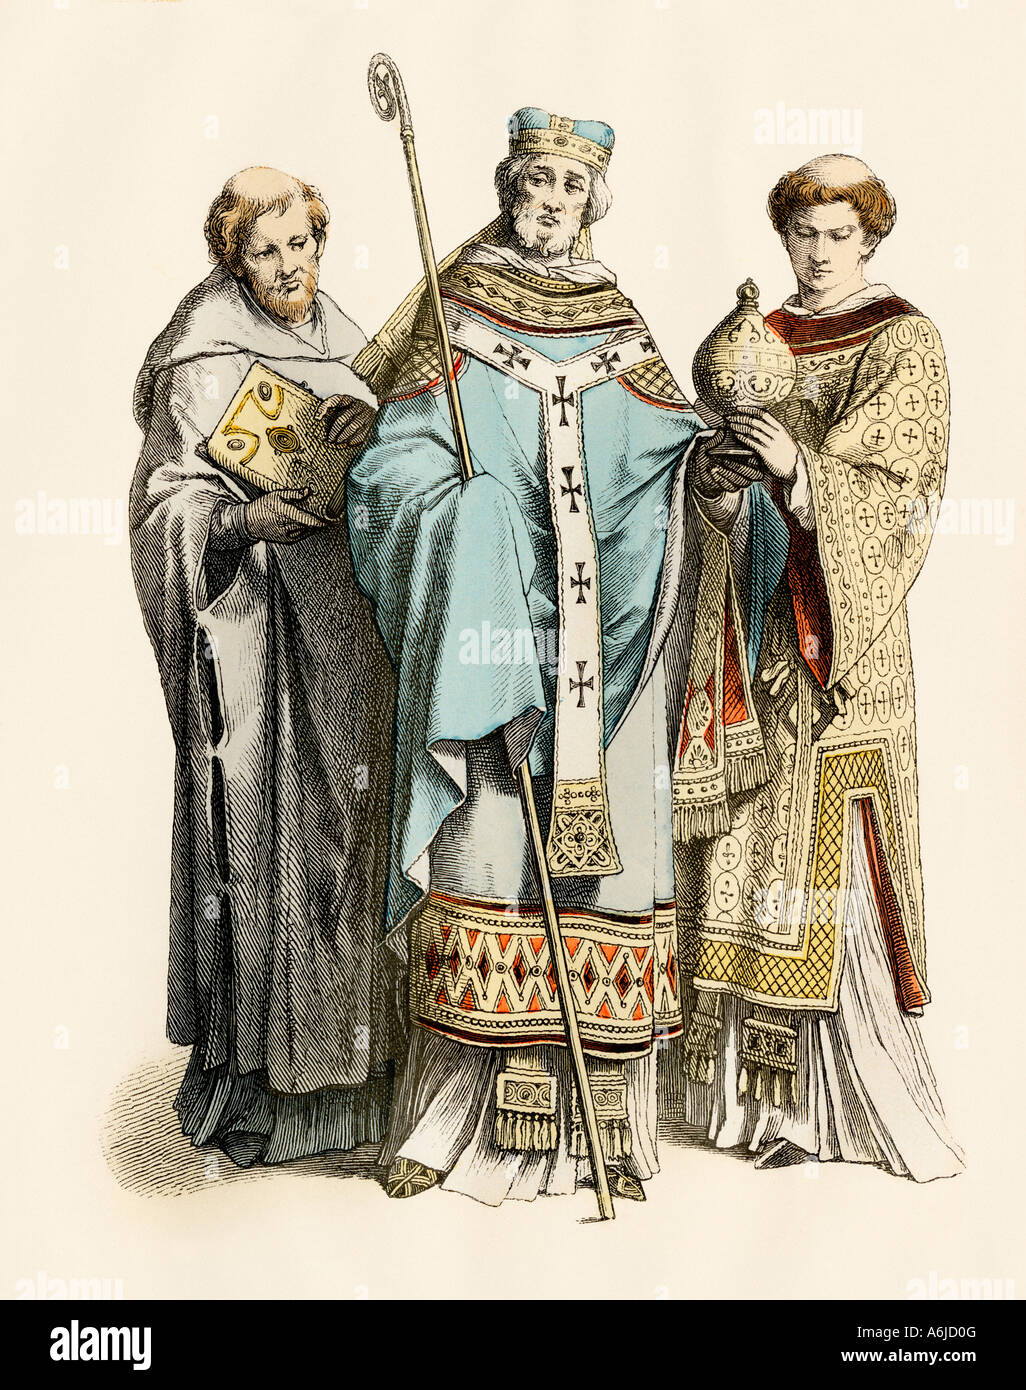 Monk archbishop and priest of the 11th century. Hand-colored print - Stock Image